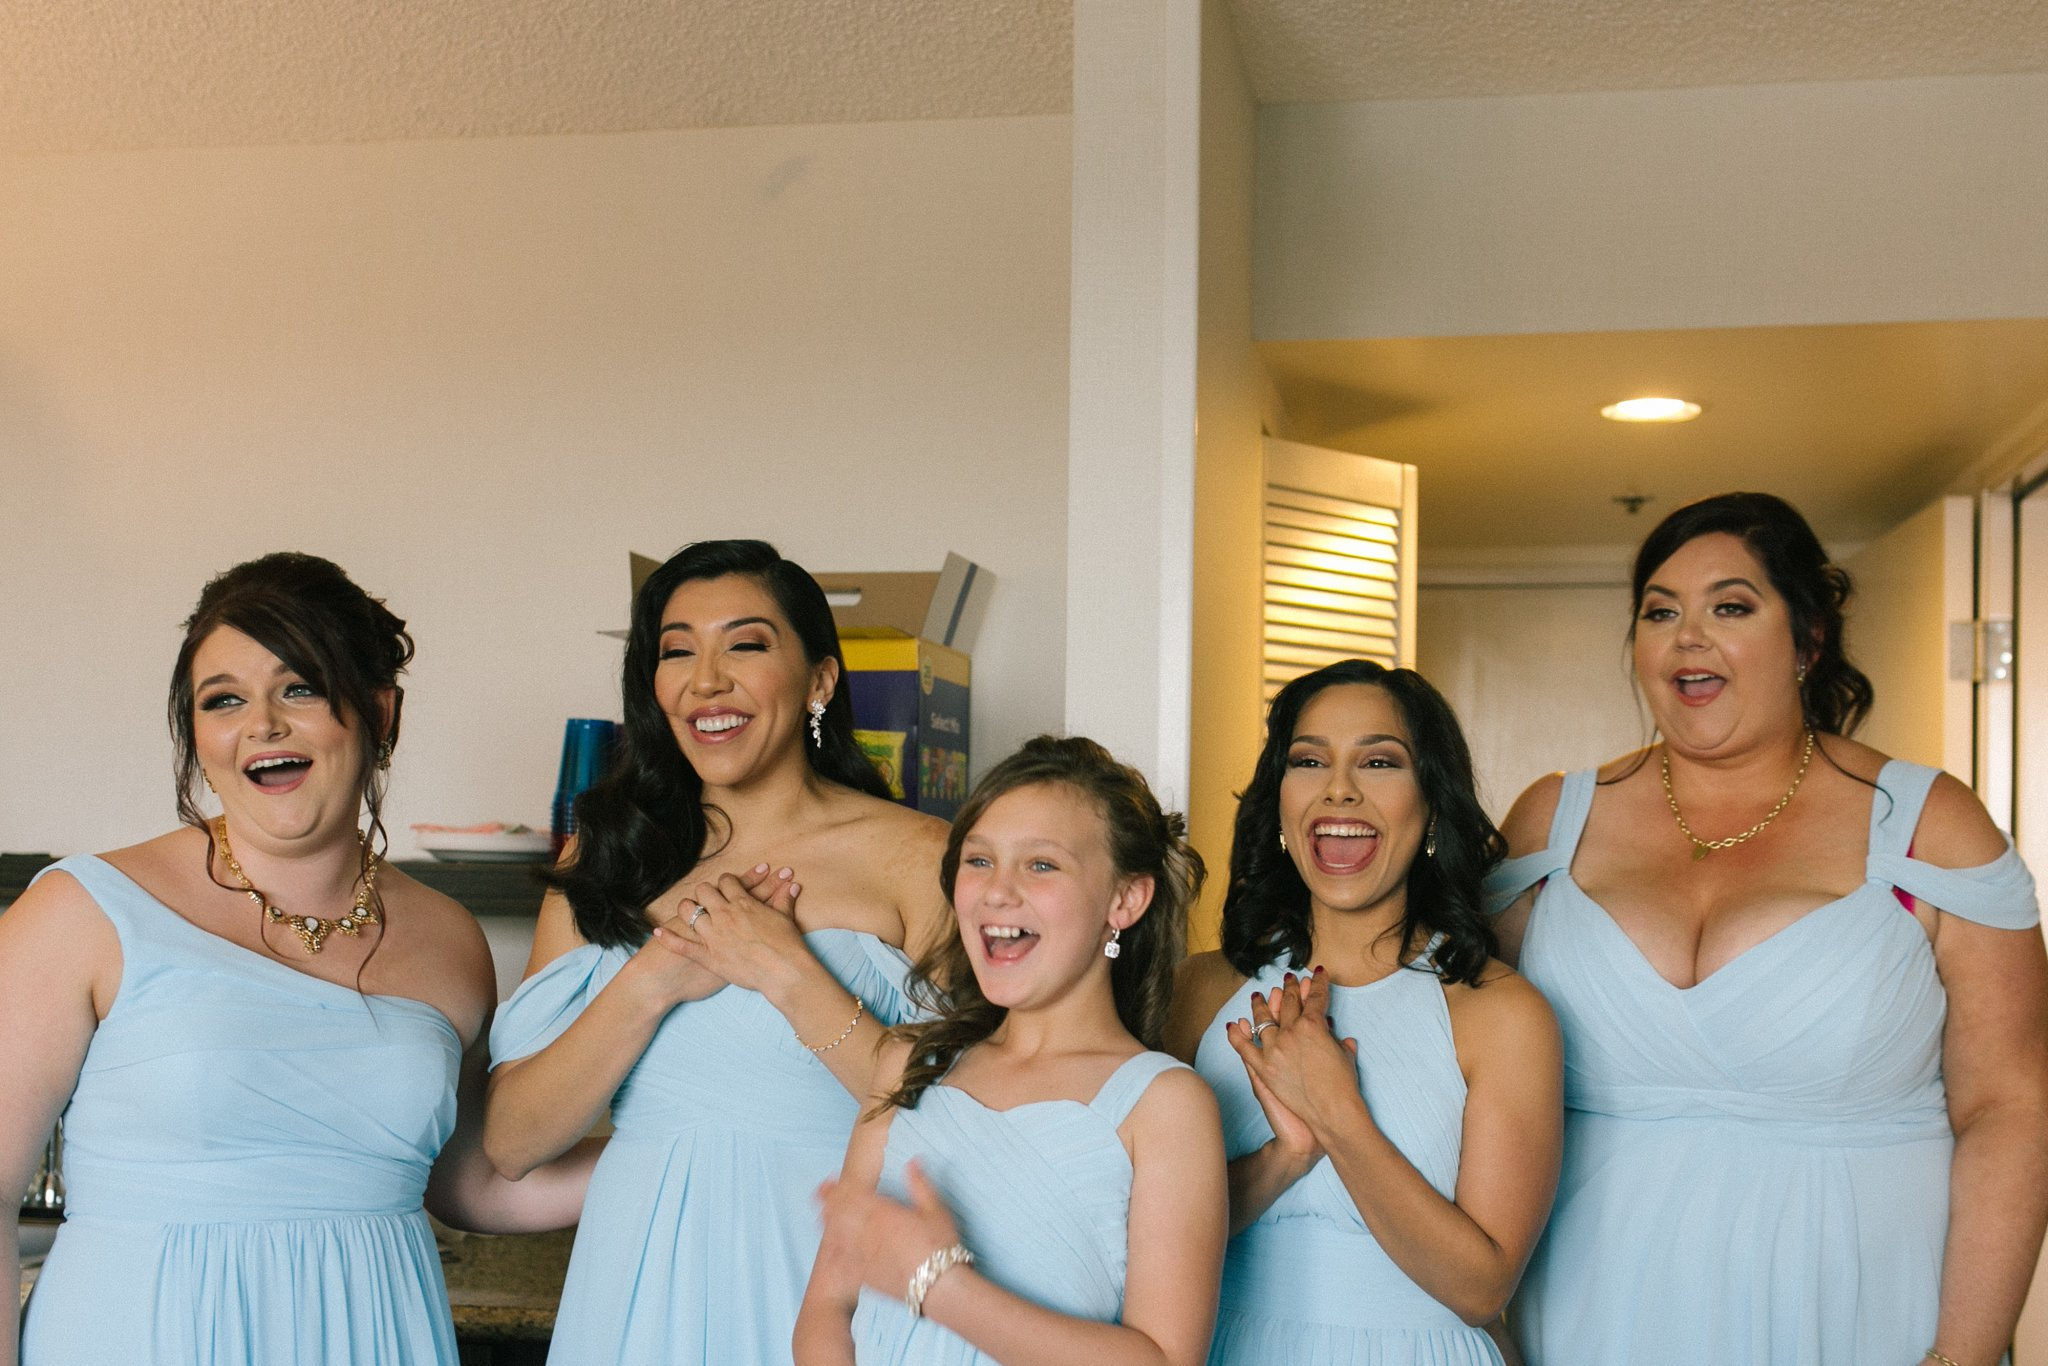 bridesmaids seeing bride for first time Crowne Plaza Marriott Phoenix hotel